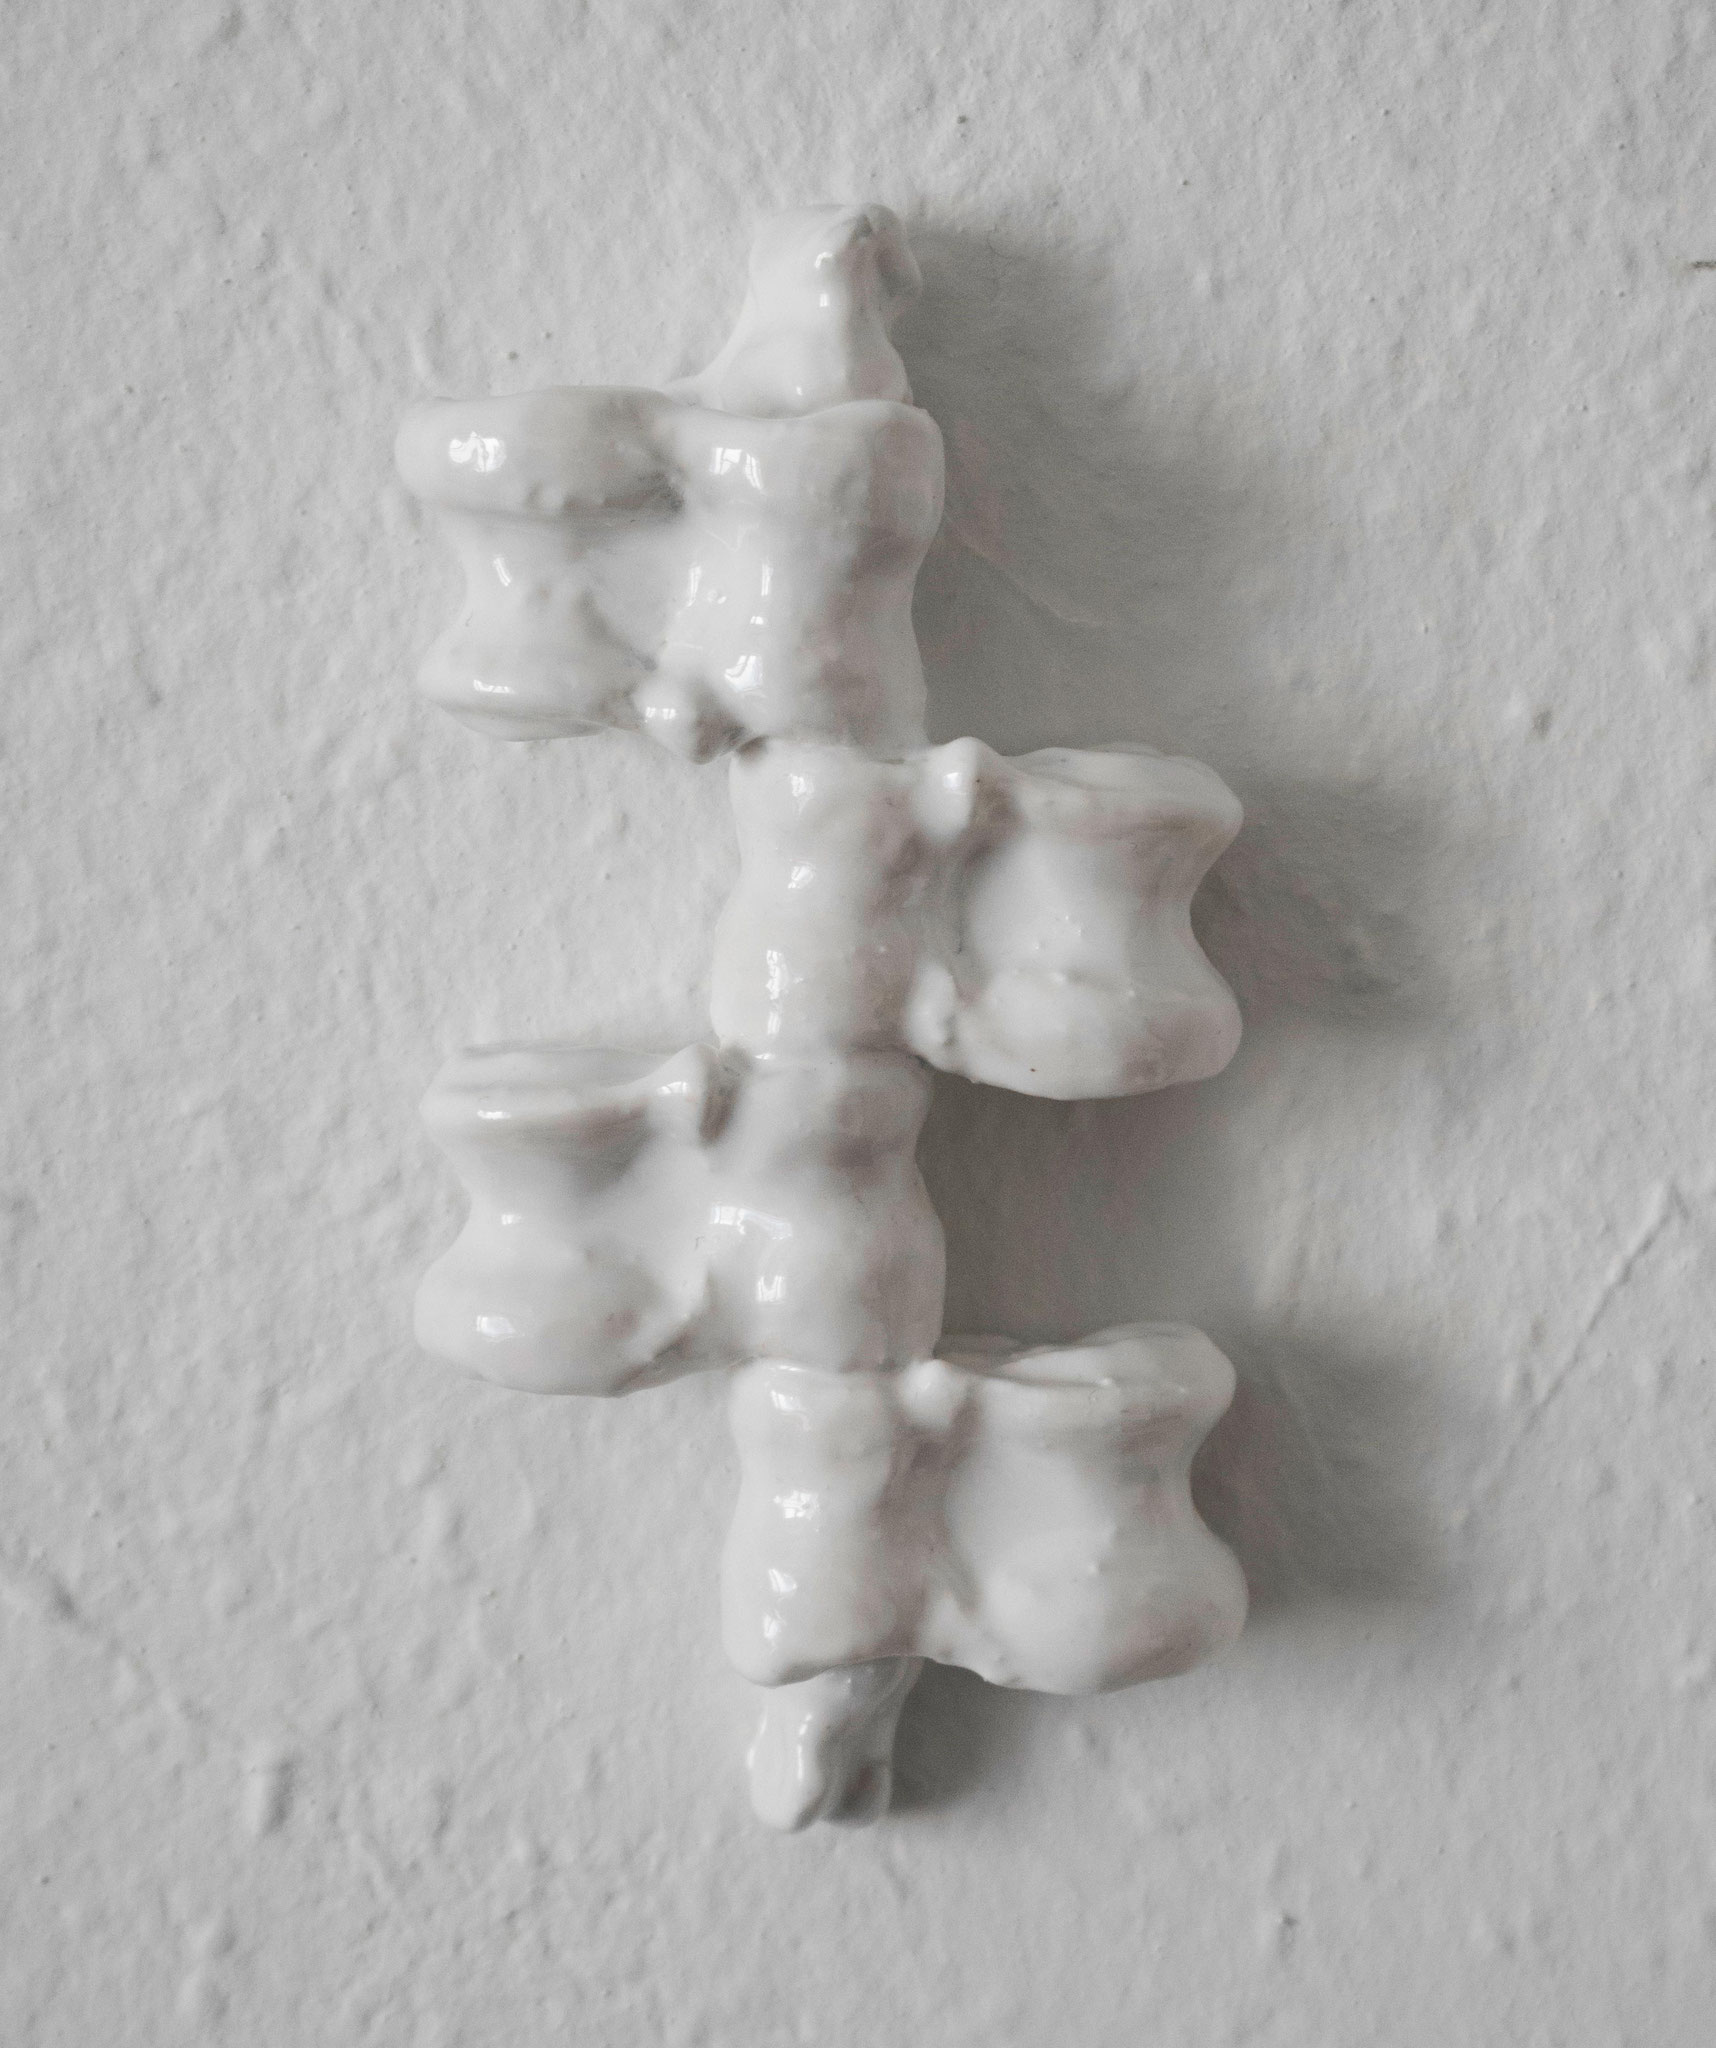 Verzahnung, 2015, bones coated with epoxy resin, 8,5x17x3cm